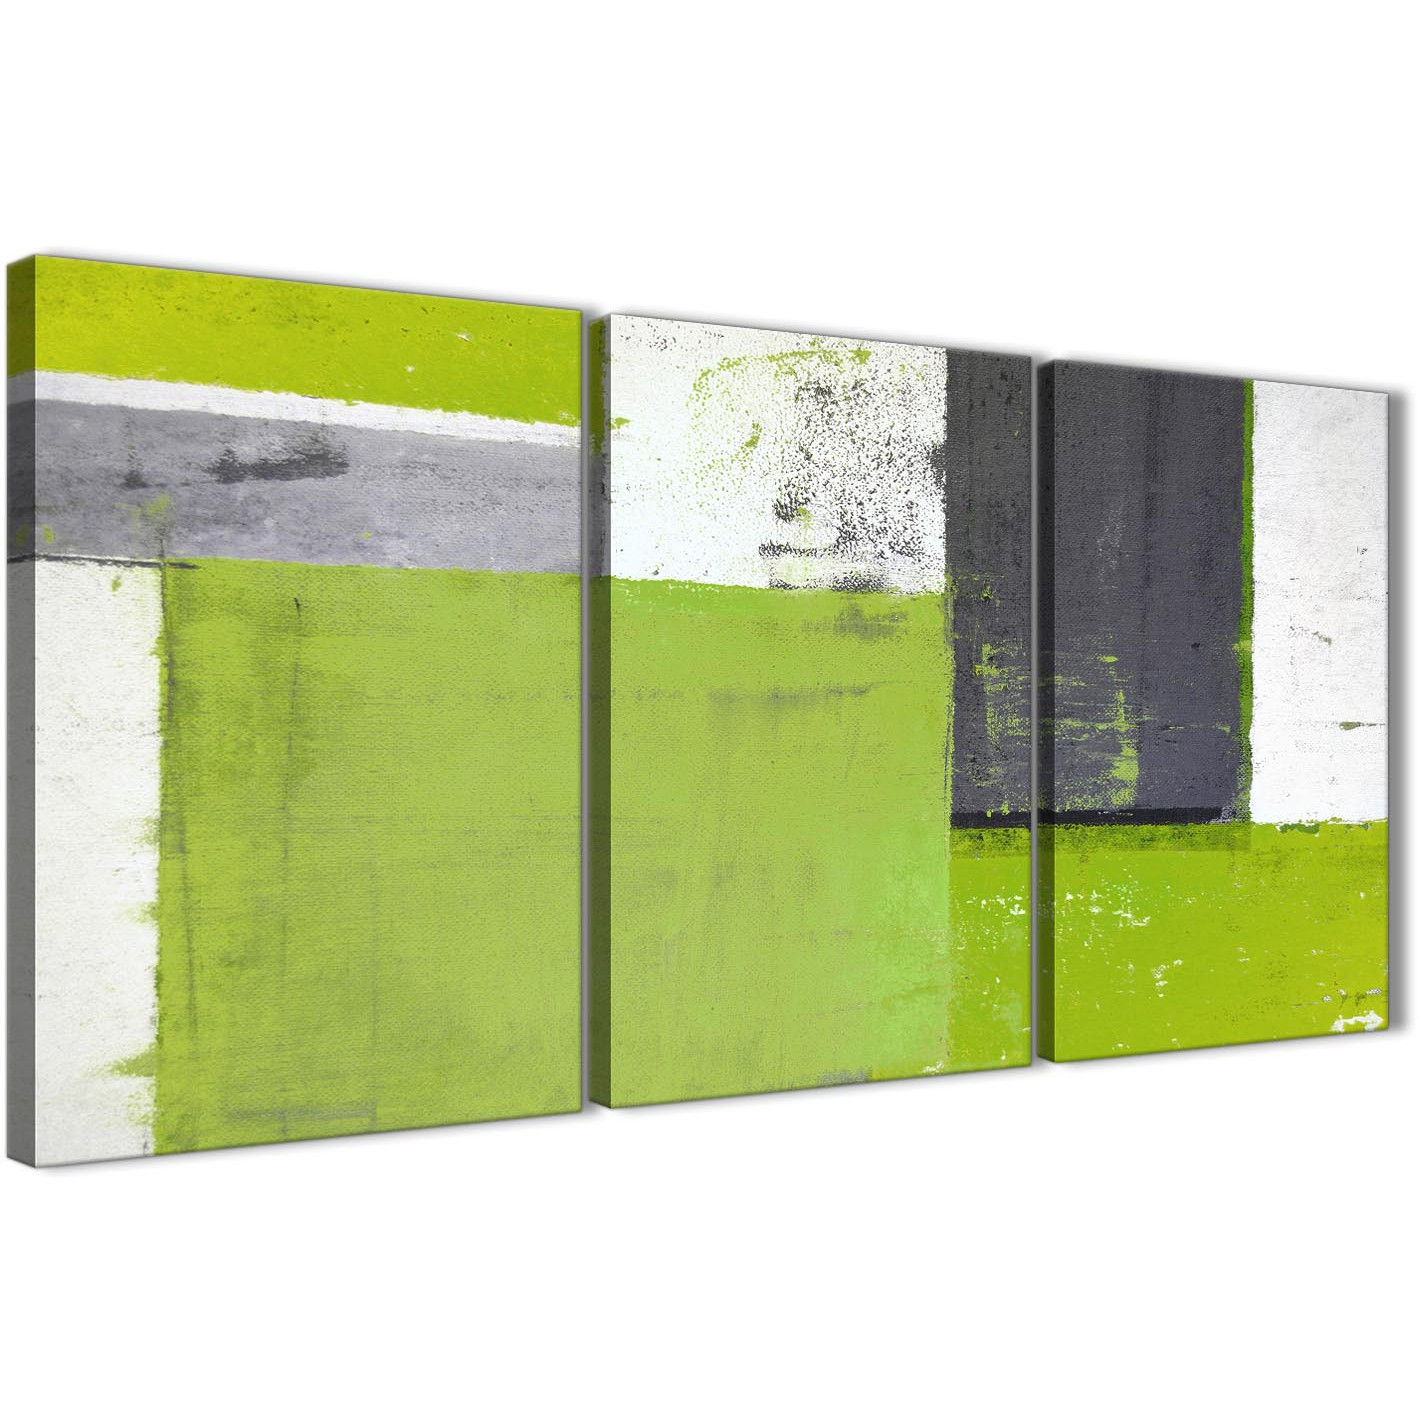 Wonderful Oversized Lime Green Grey Abstract Painting Canvas Wall Art Print Split 3  Set 125cm Wide 3339 Display Gallery Item 1 ...